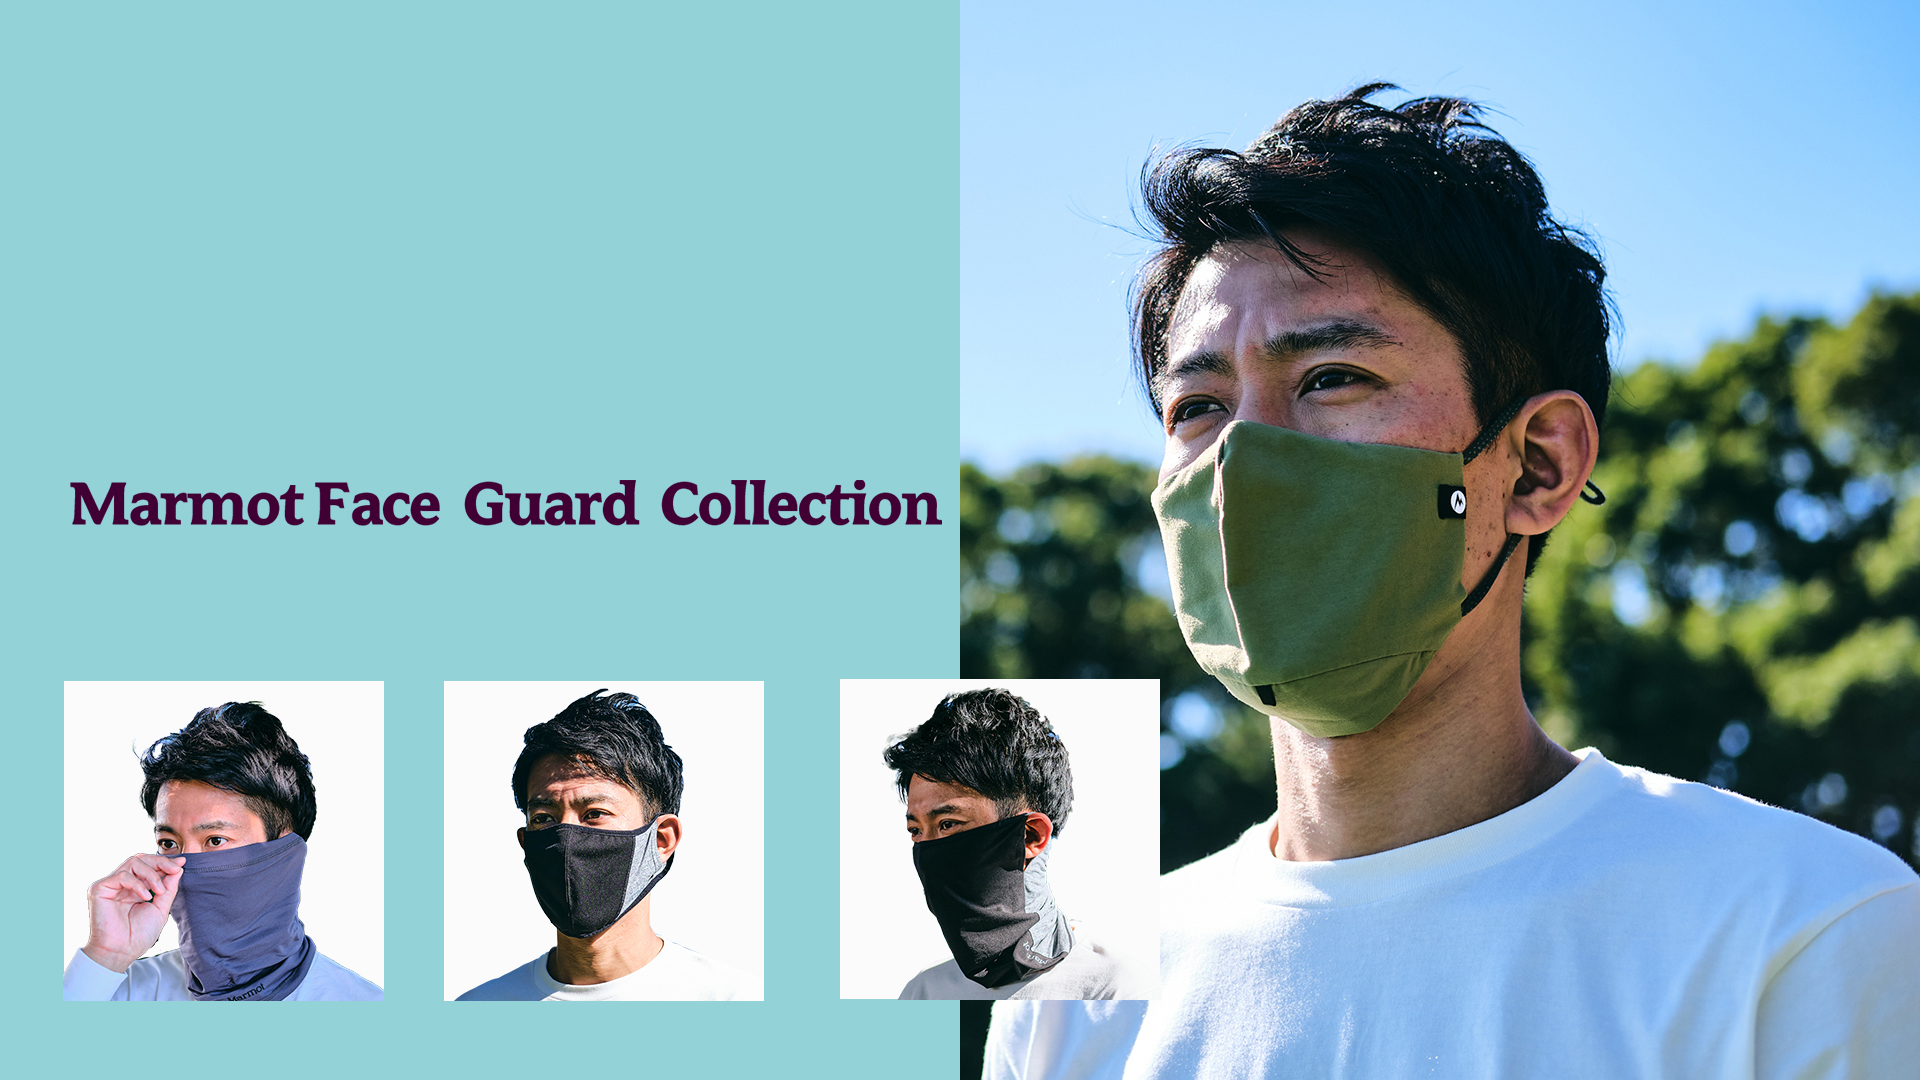 Marmot Face Guard Collection